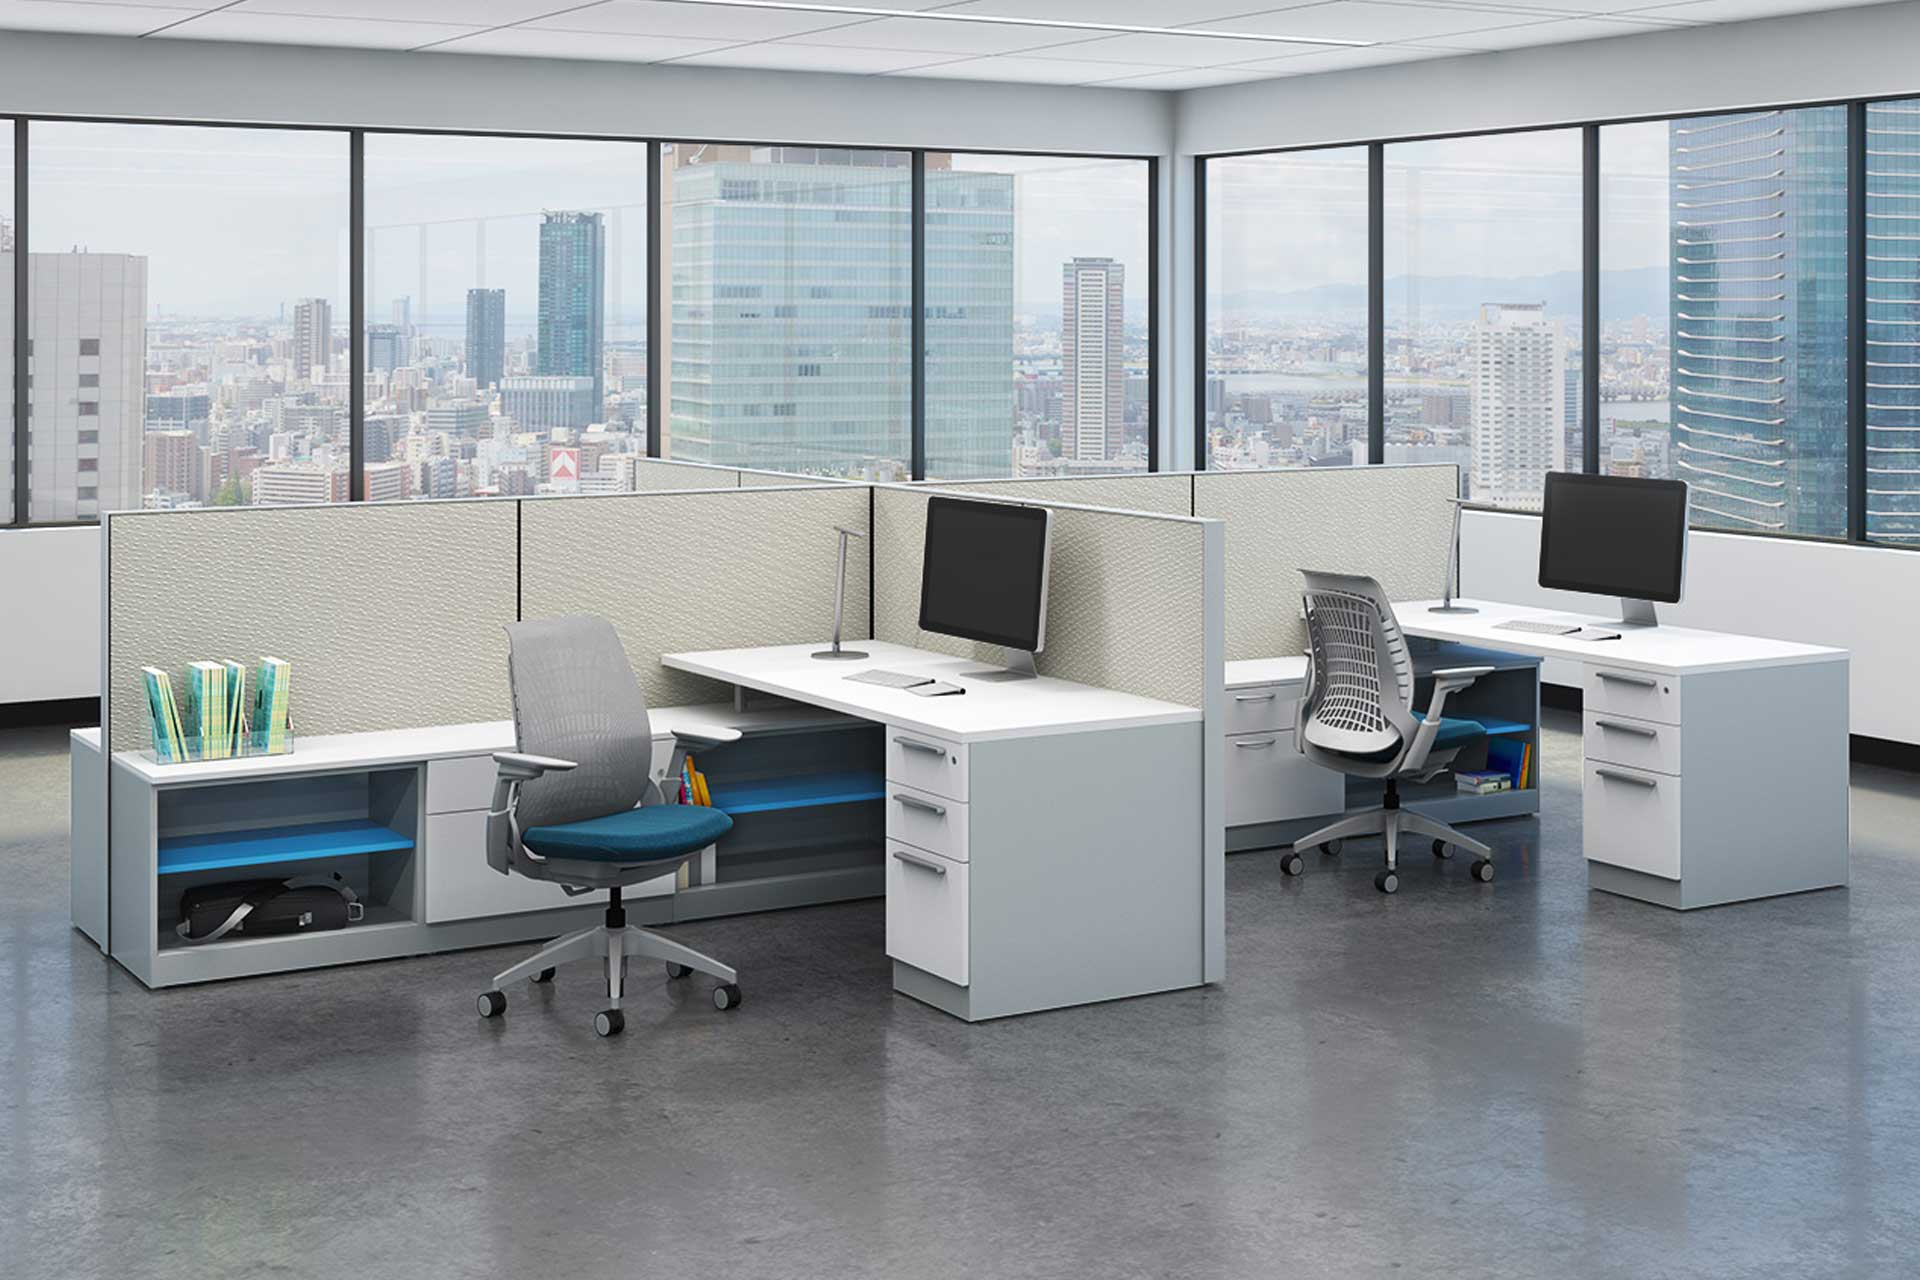 Modern office with two identical cubicles in front of wide windows